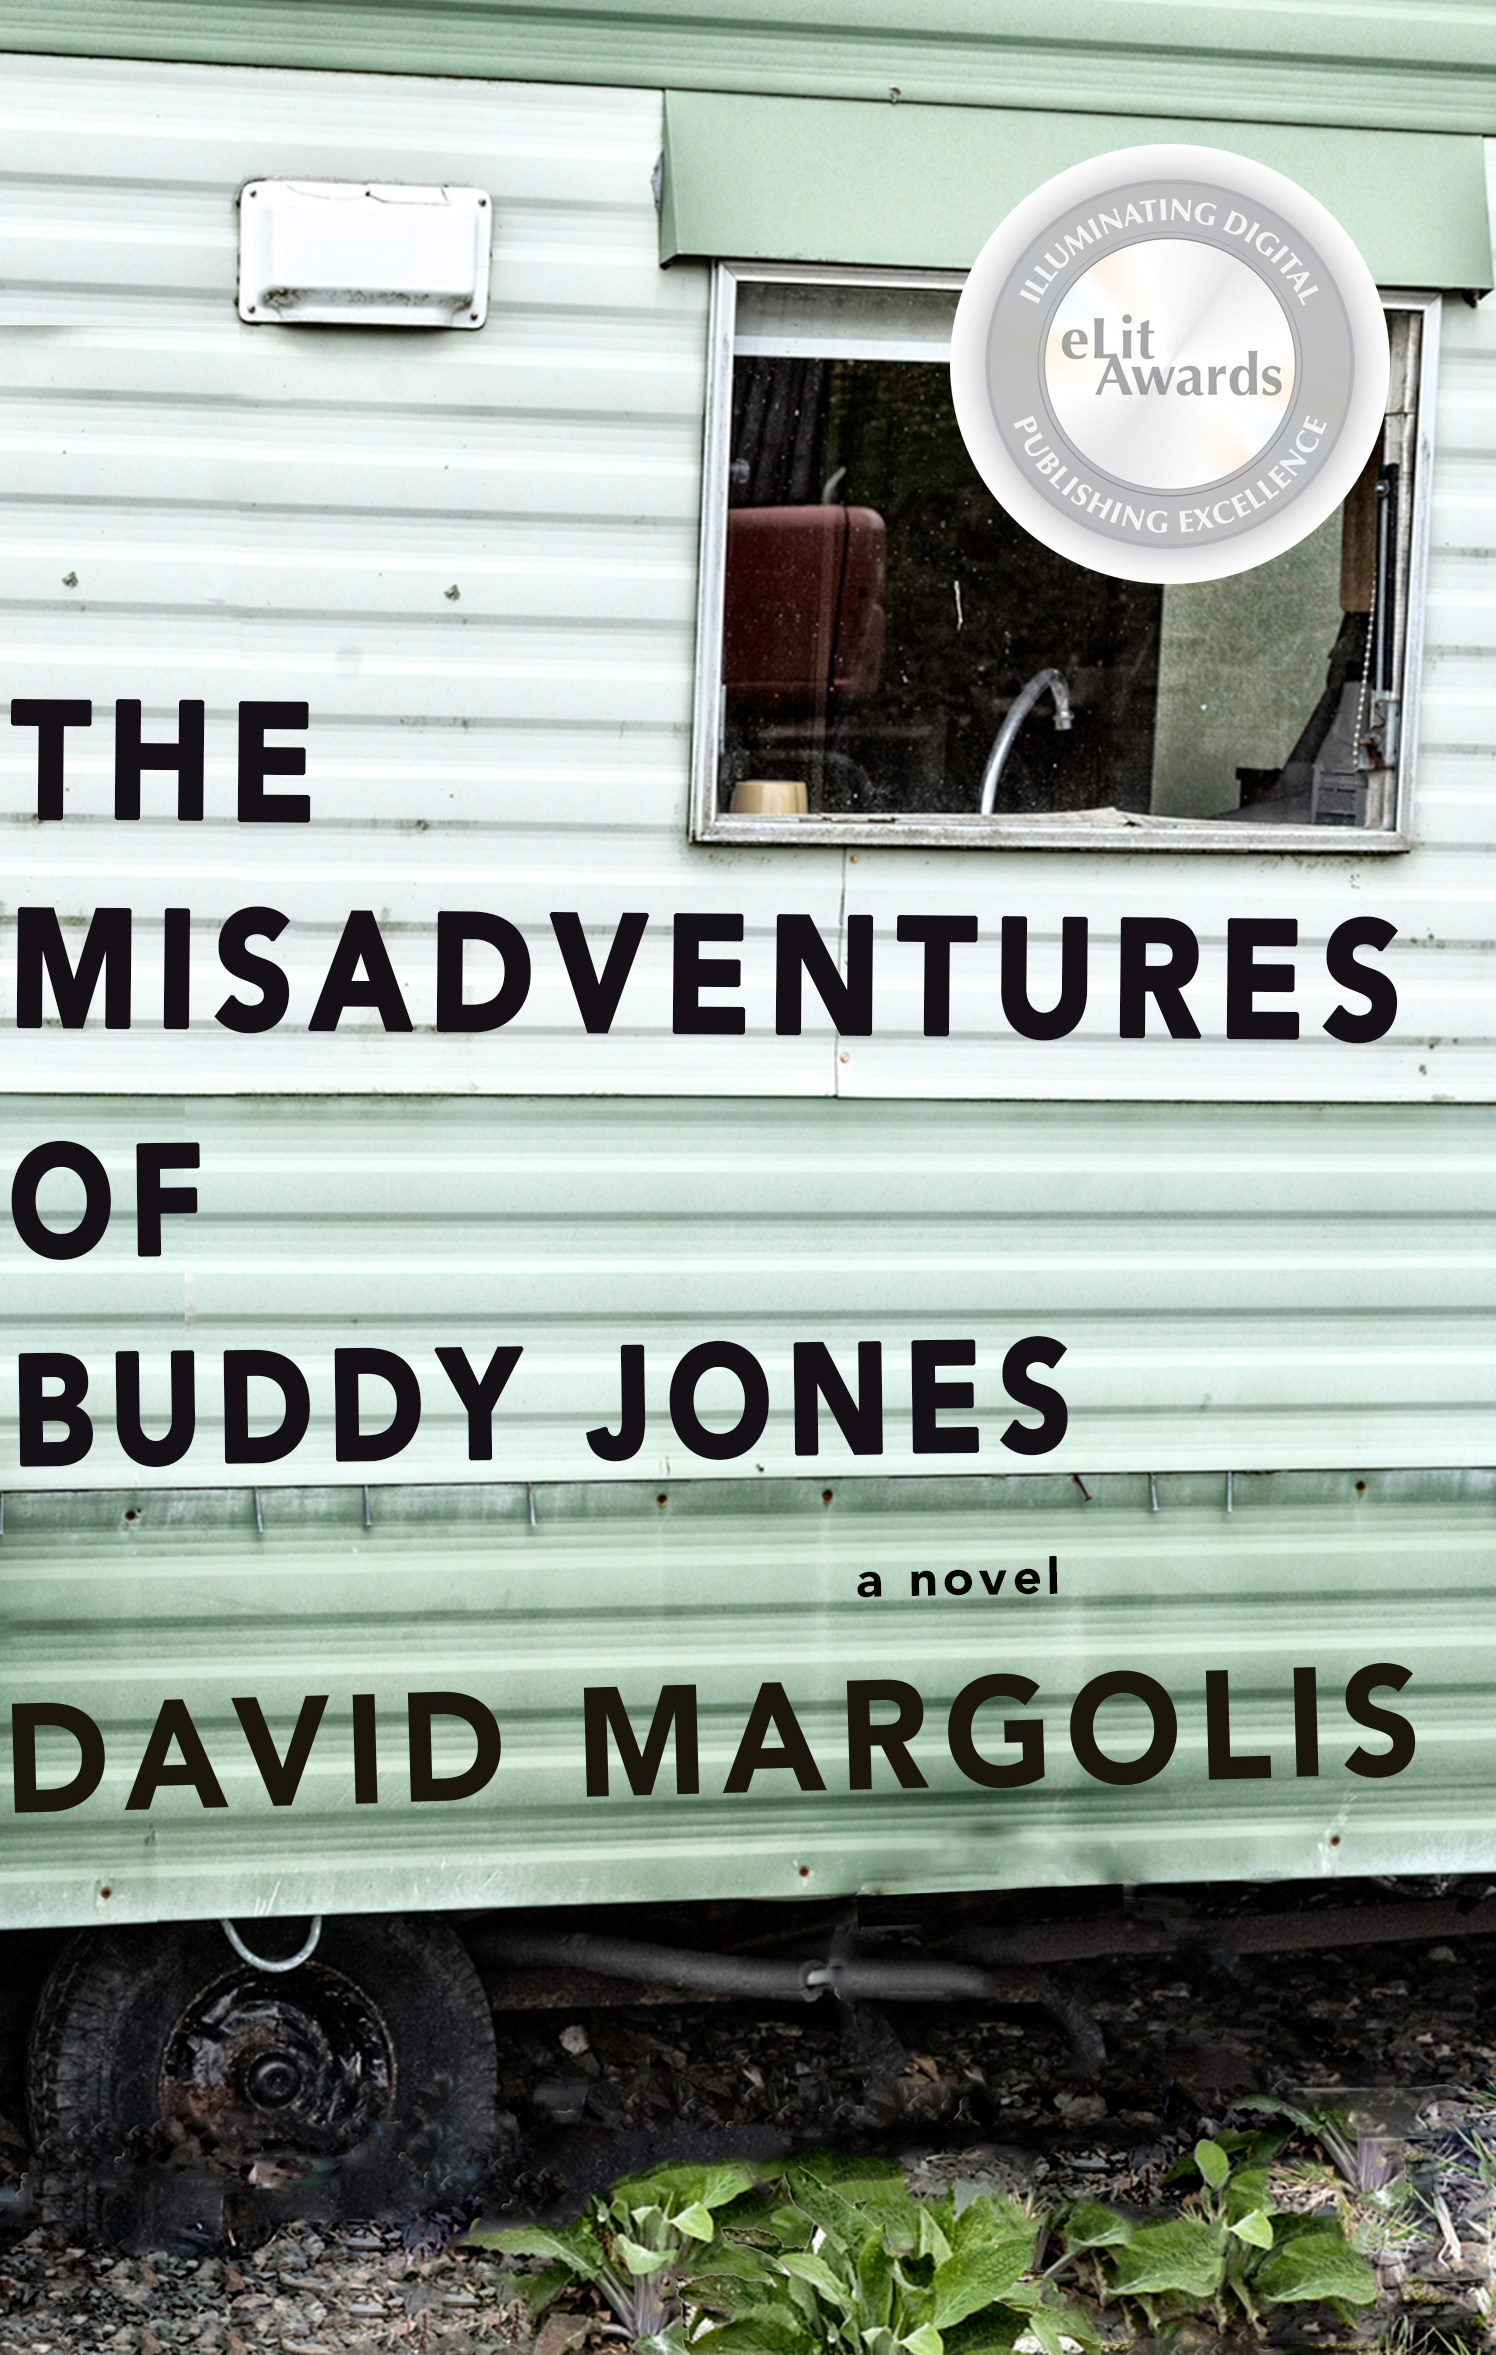 THE MISADVENTURES OF BUDDY JONES